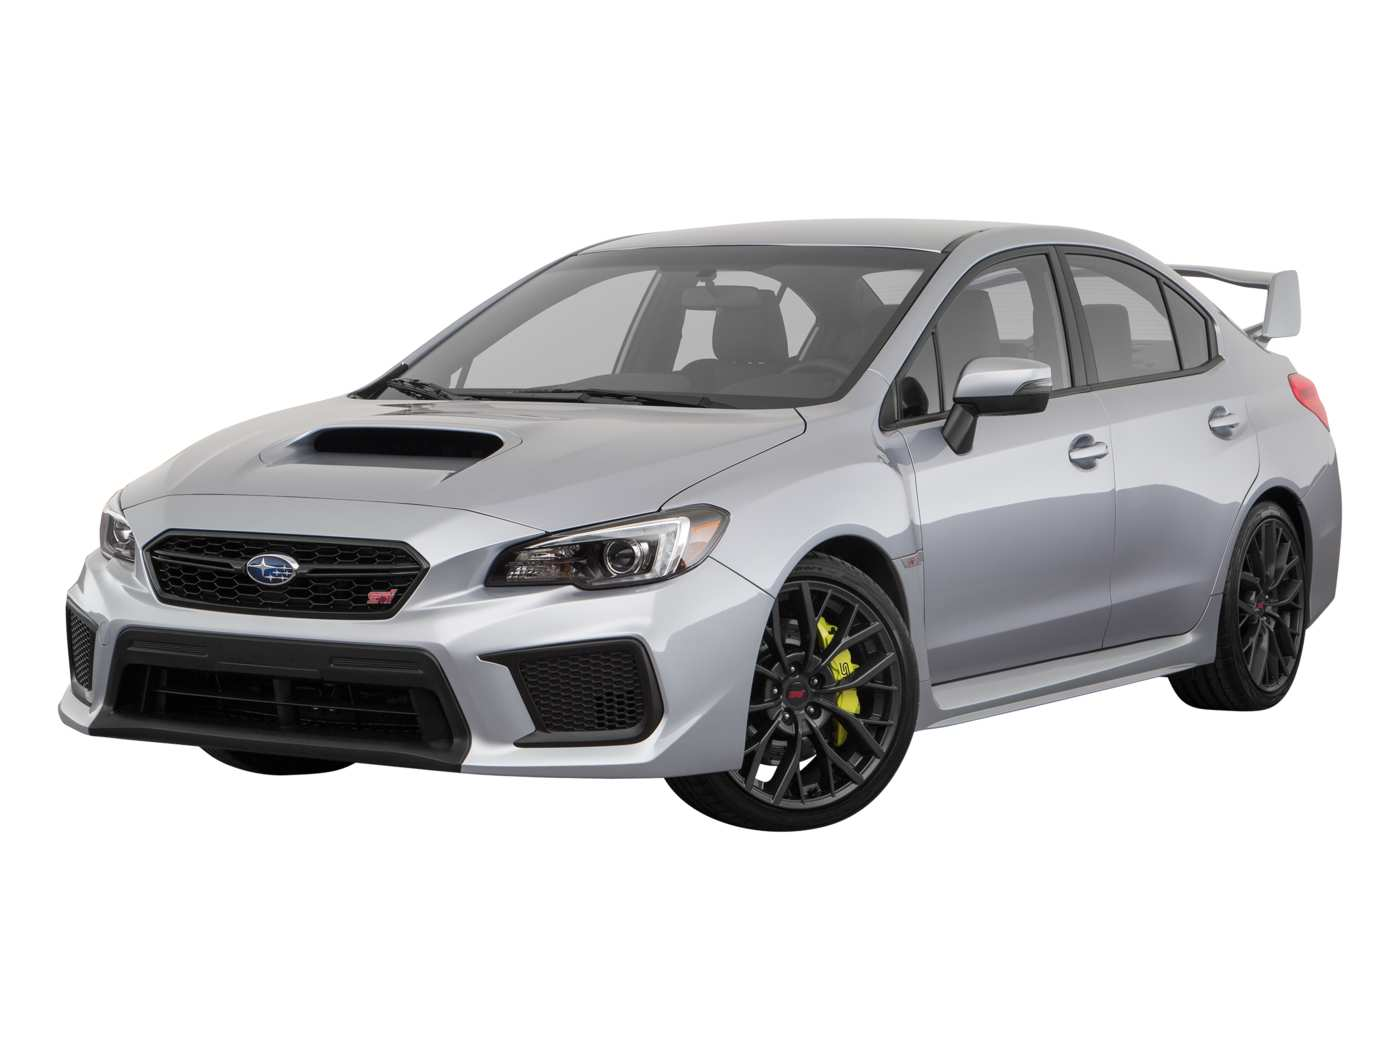 2019 Subaru WRX STI Limited with Wing Spoiler Manual